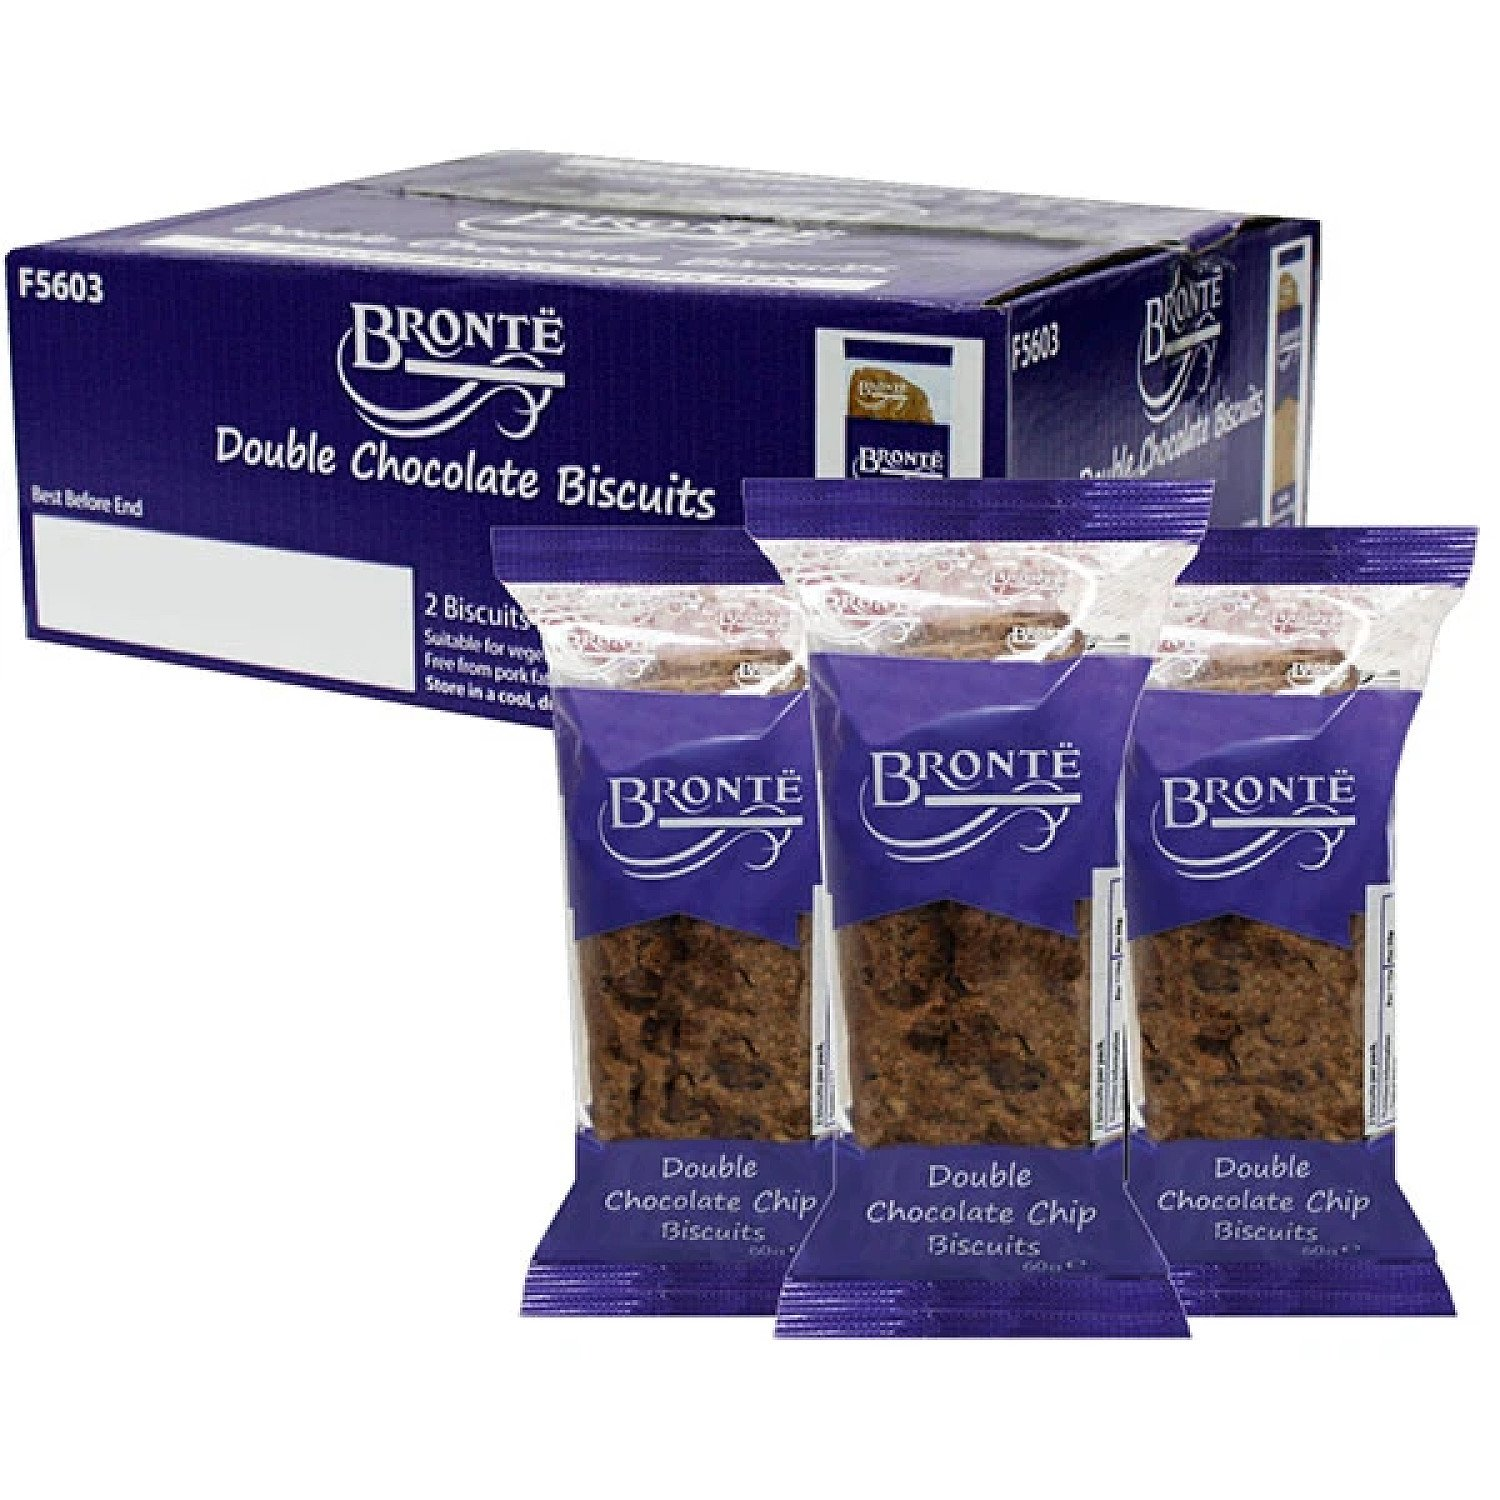 24 X BRONTE DOUBLE CHOCOLATE CHIP BISCUITS 60G TWIN PACKS Free Postage